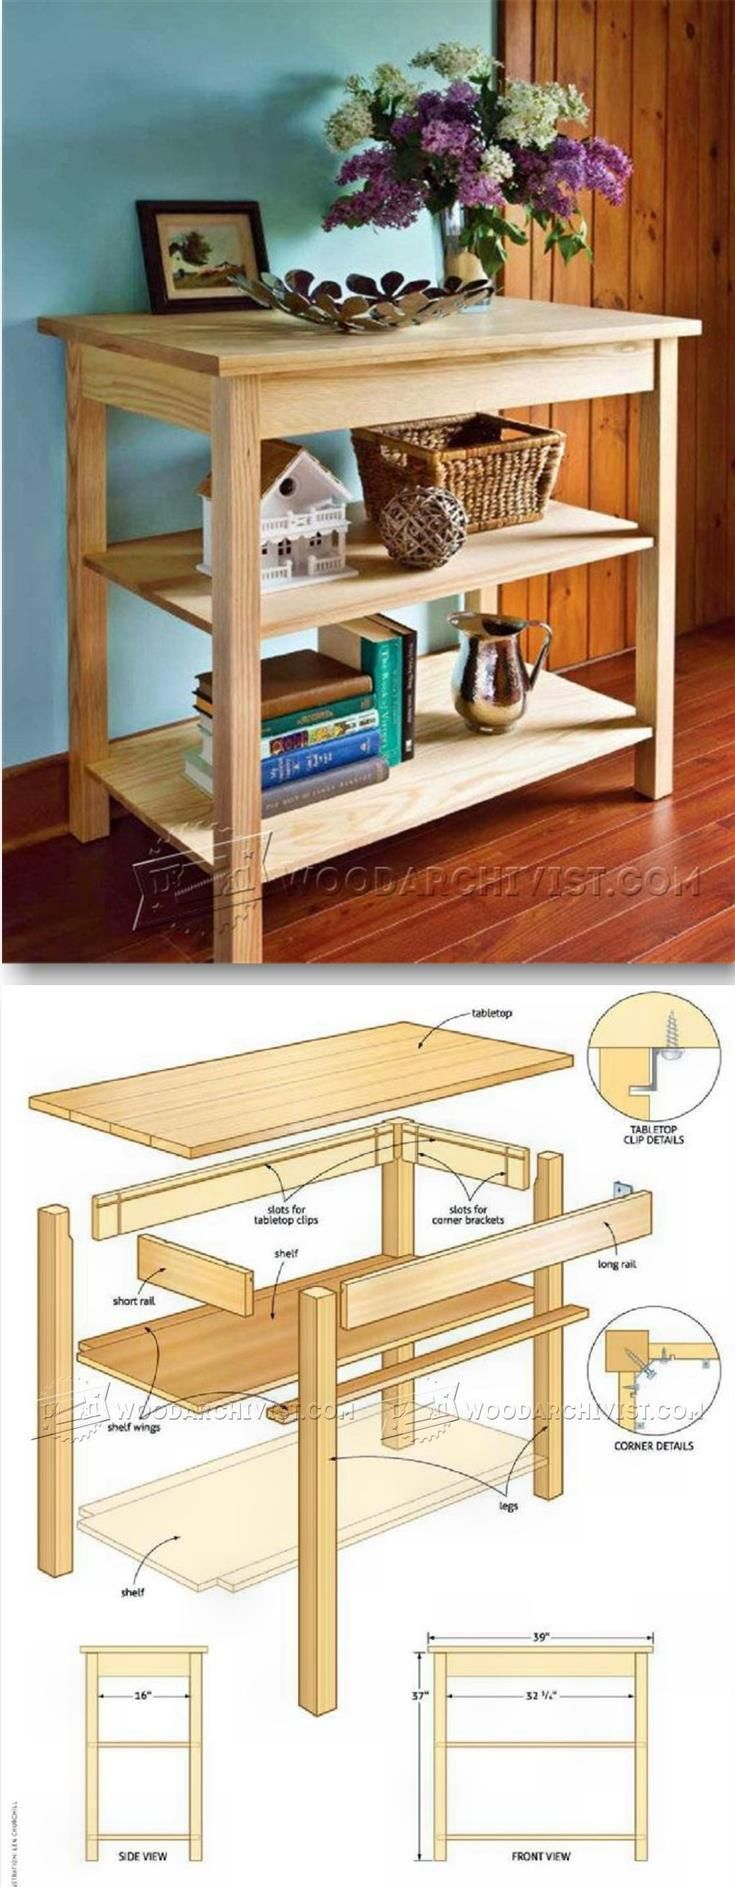 Ash Table Plans - Furniture Plans and Projects | http://WoodArchivist.com